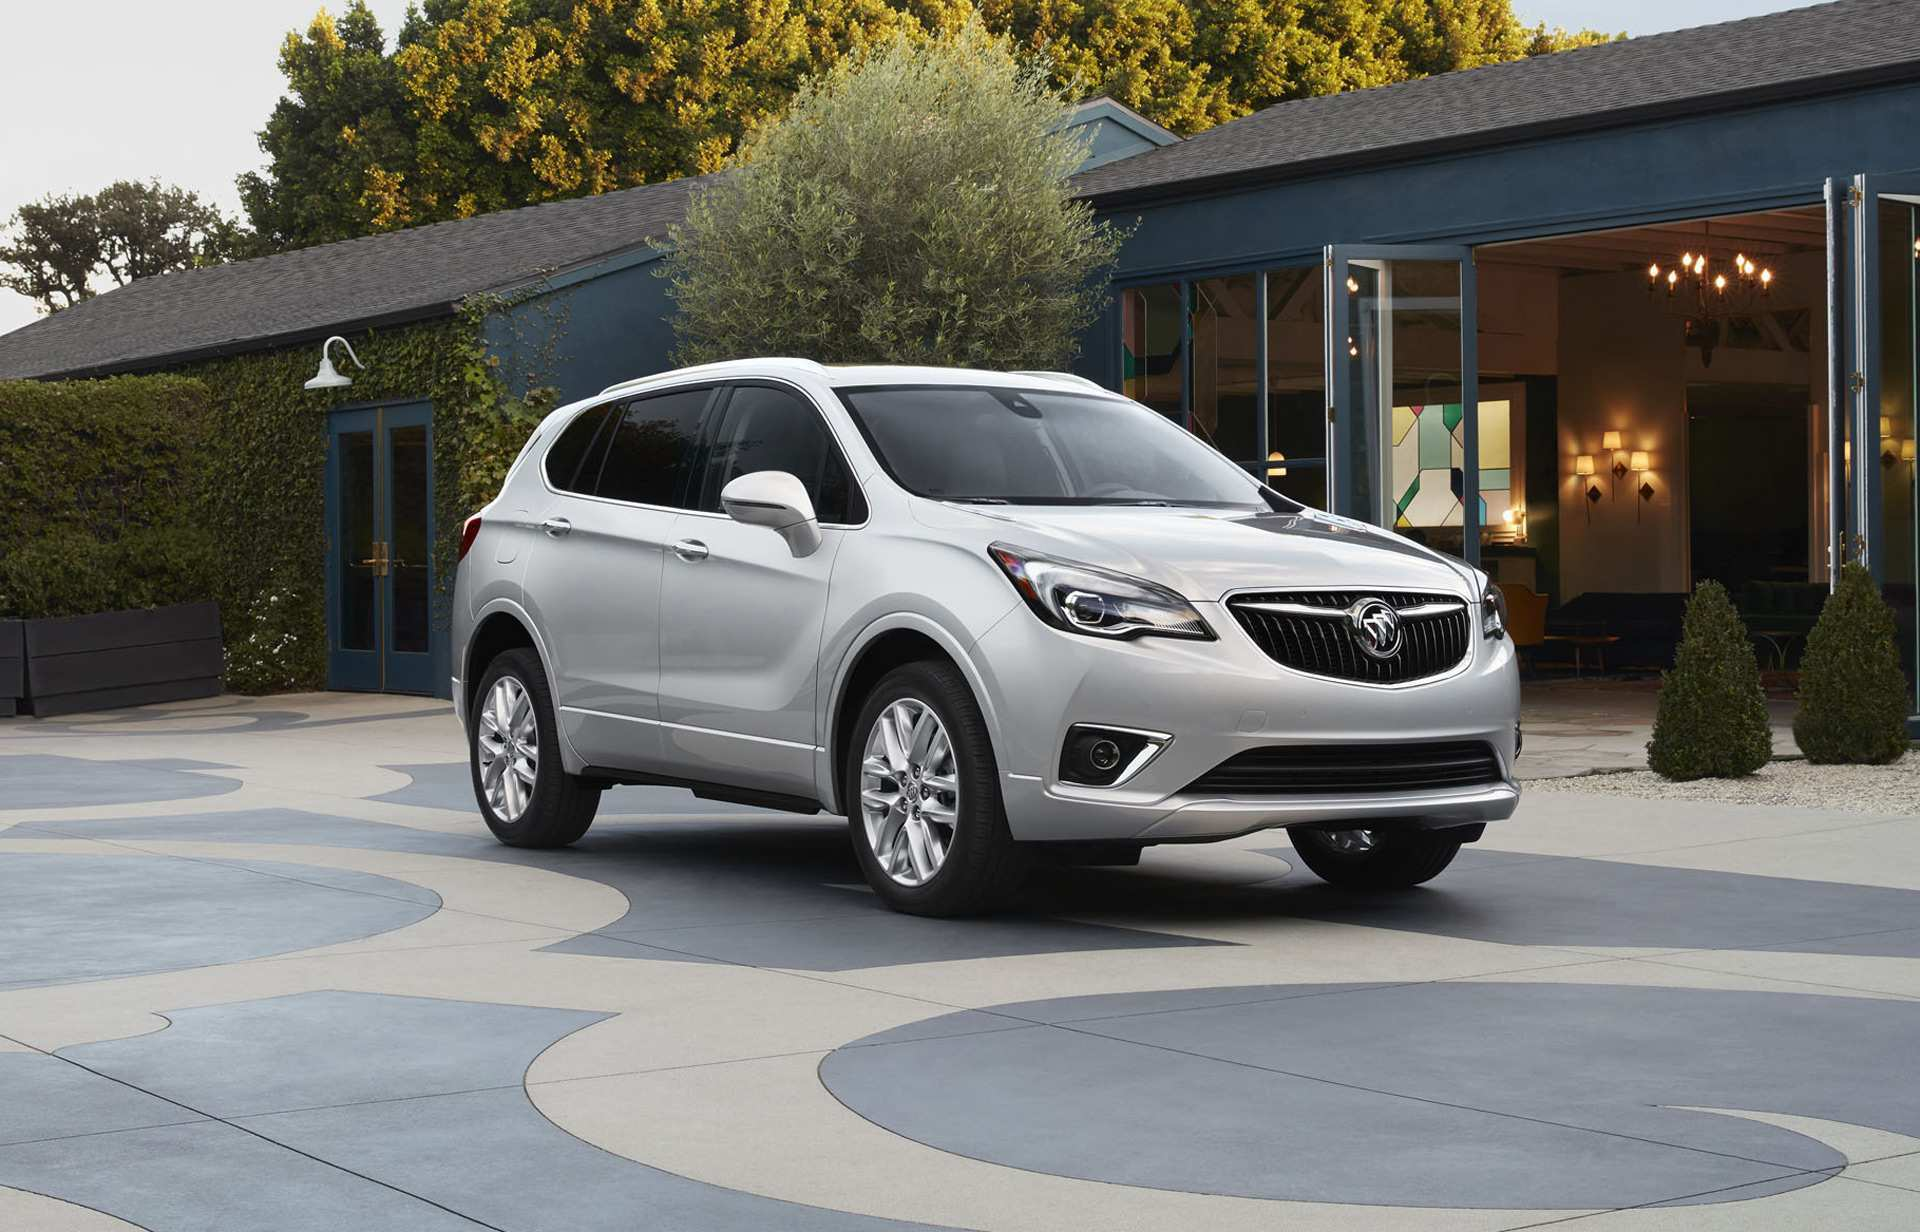 30 All New 2019 Buick Envision Pricing by 2019 Buick Envision